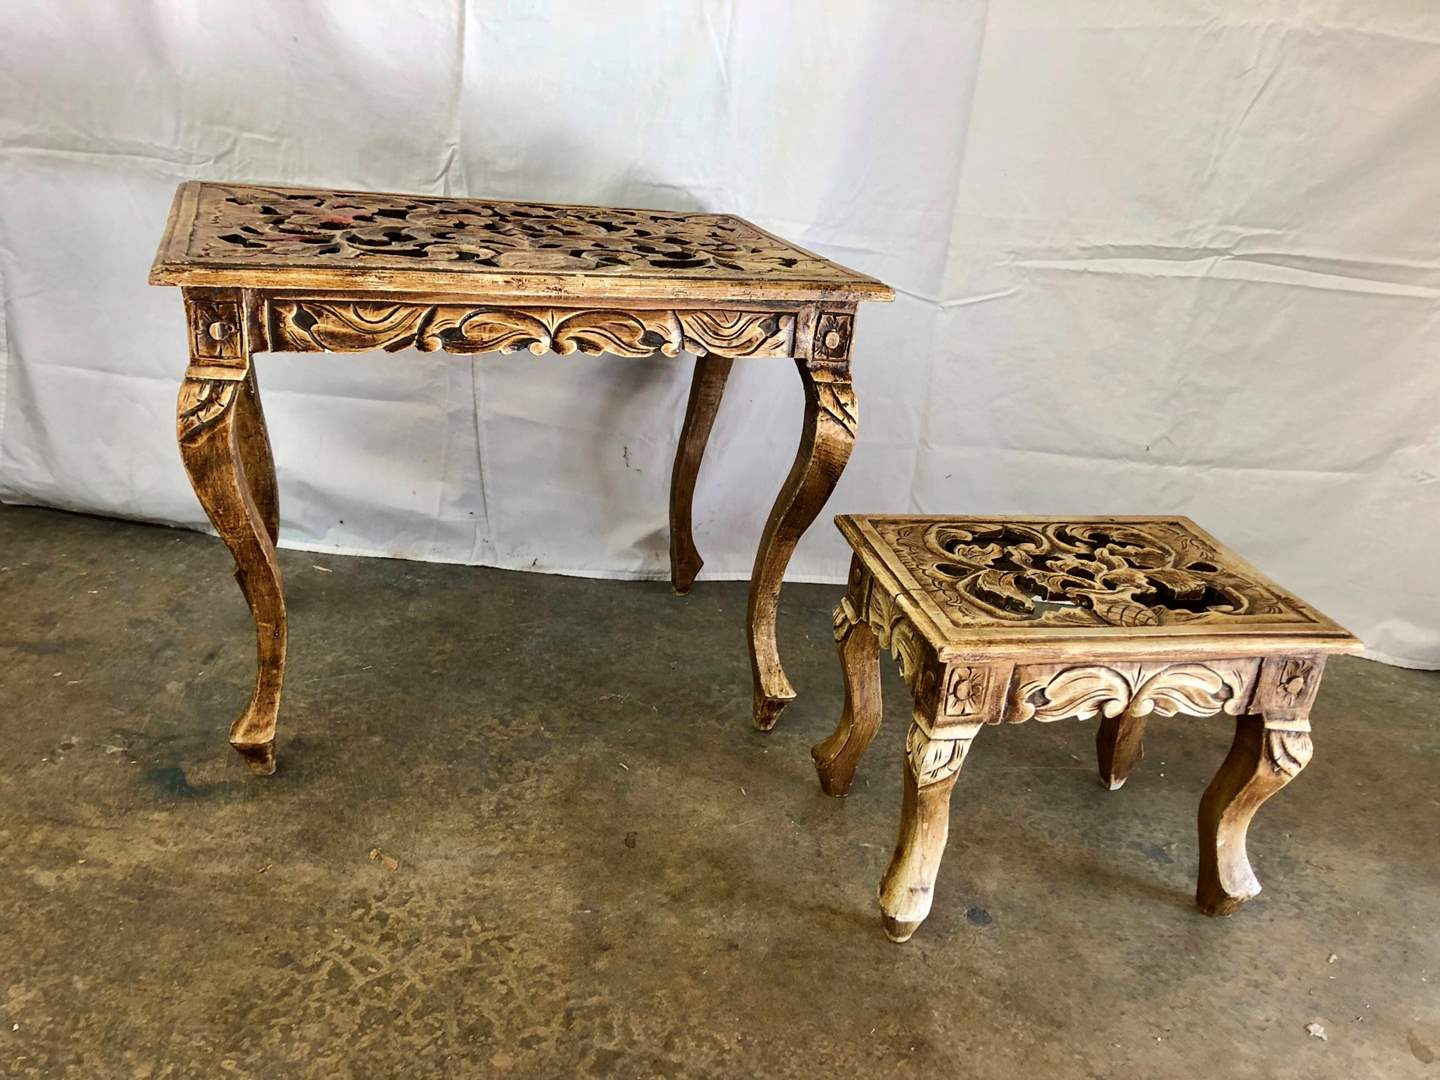 puget sound estate auctions lot two vintage carved wood accent table click below enlarge turquoise patio umbrella wire end mosaic outdoor and chairs mini desk trestle dining white